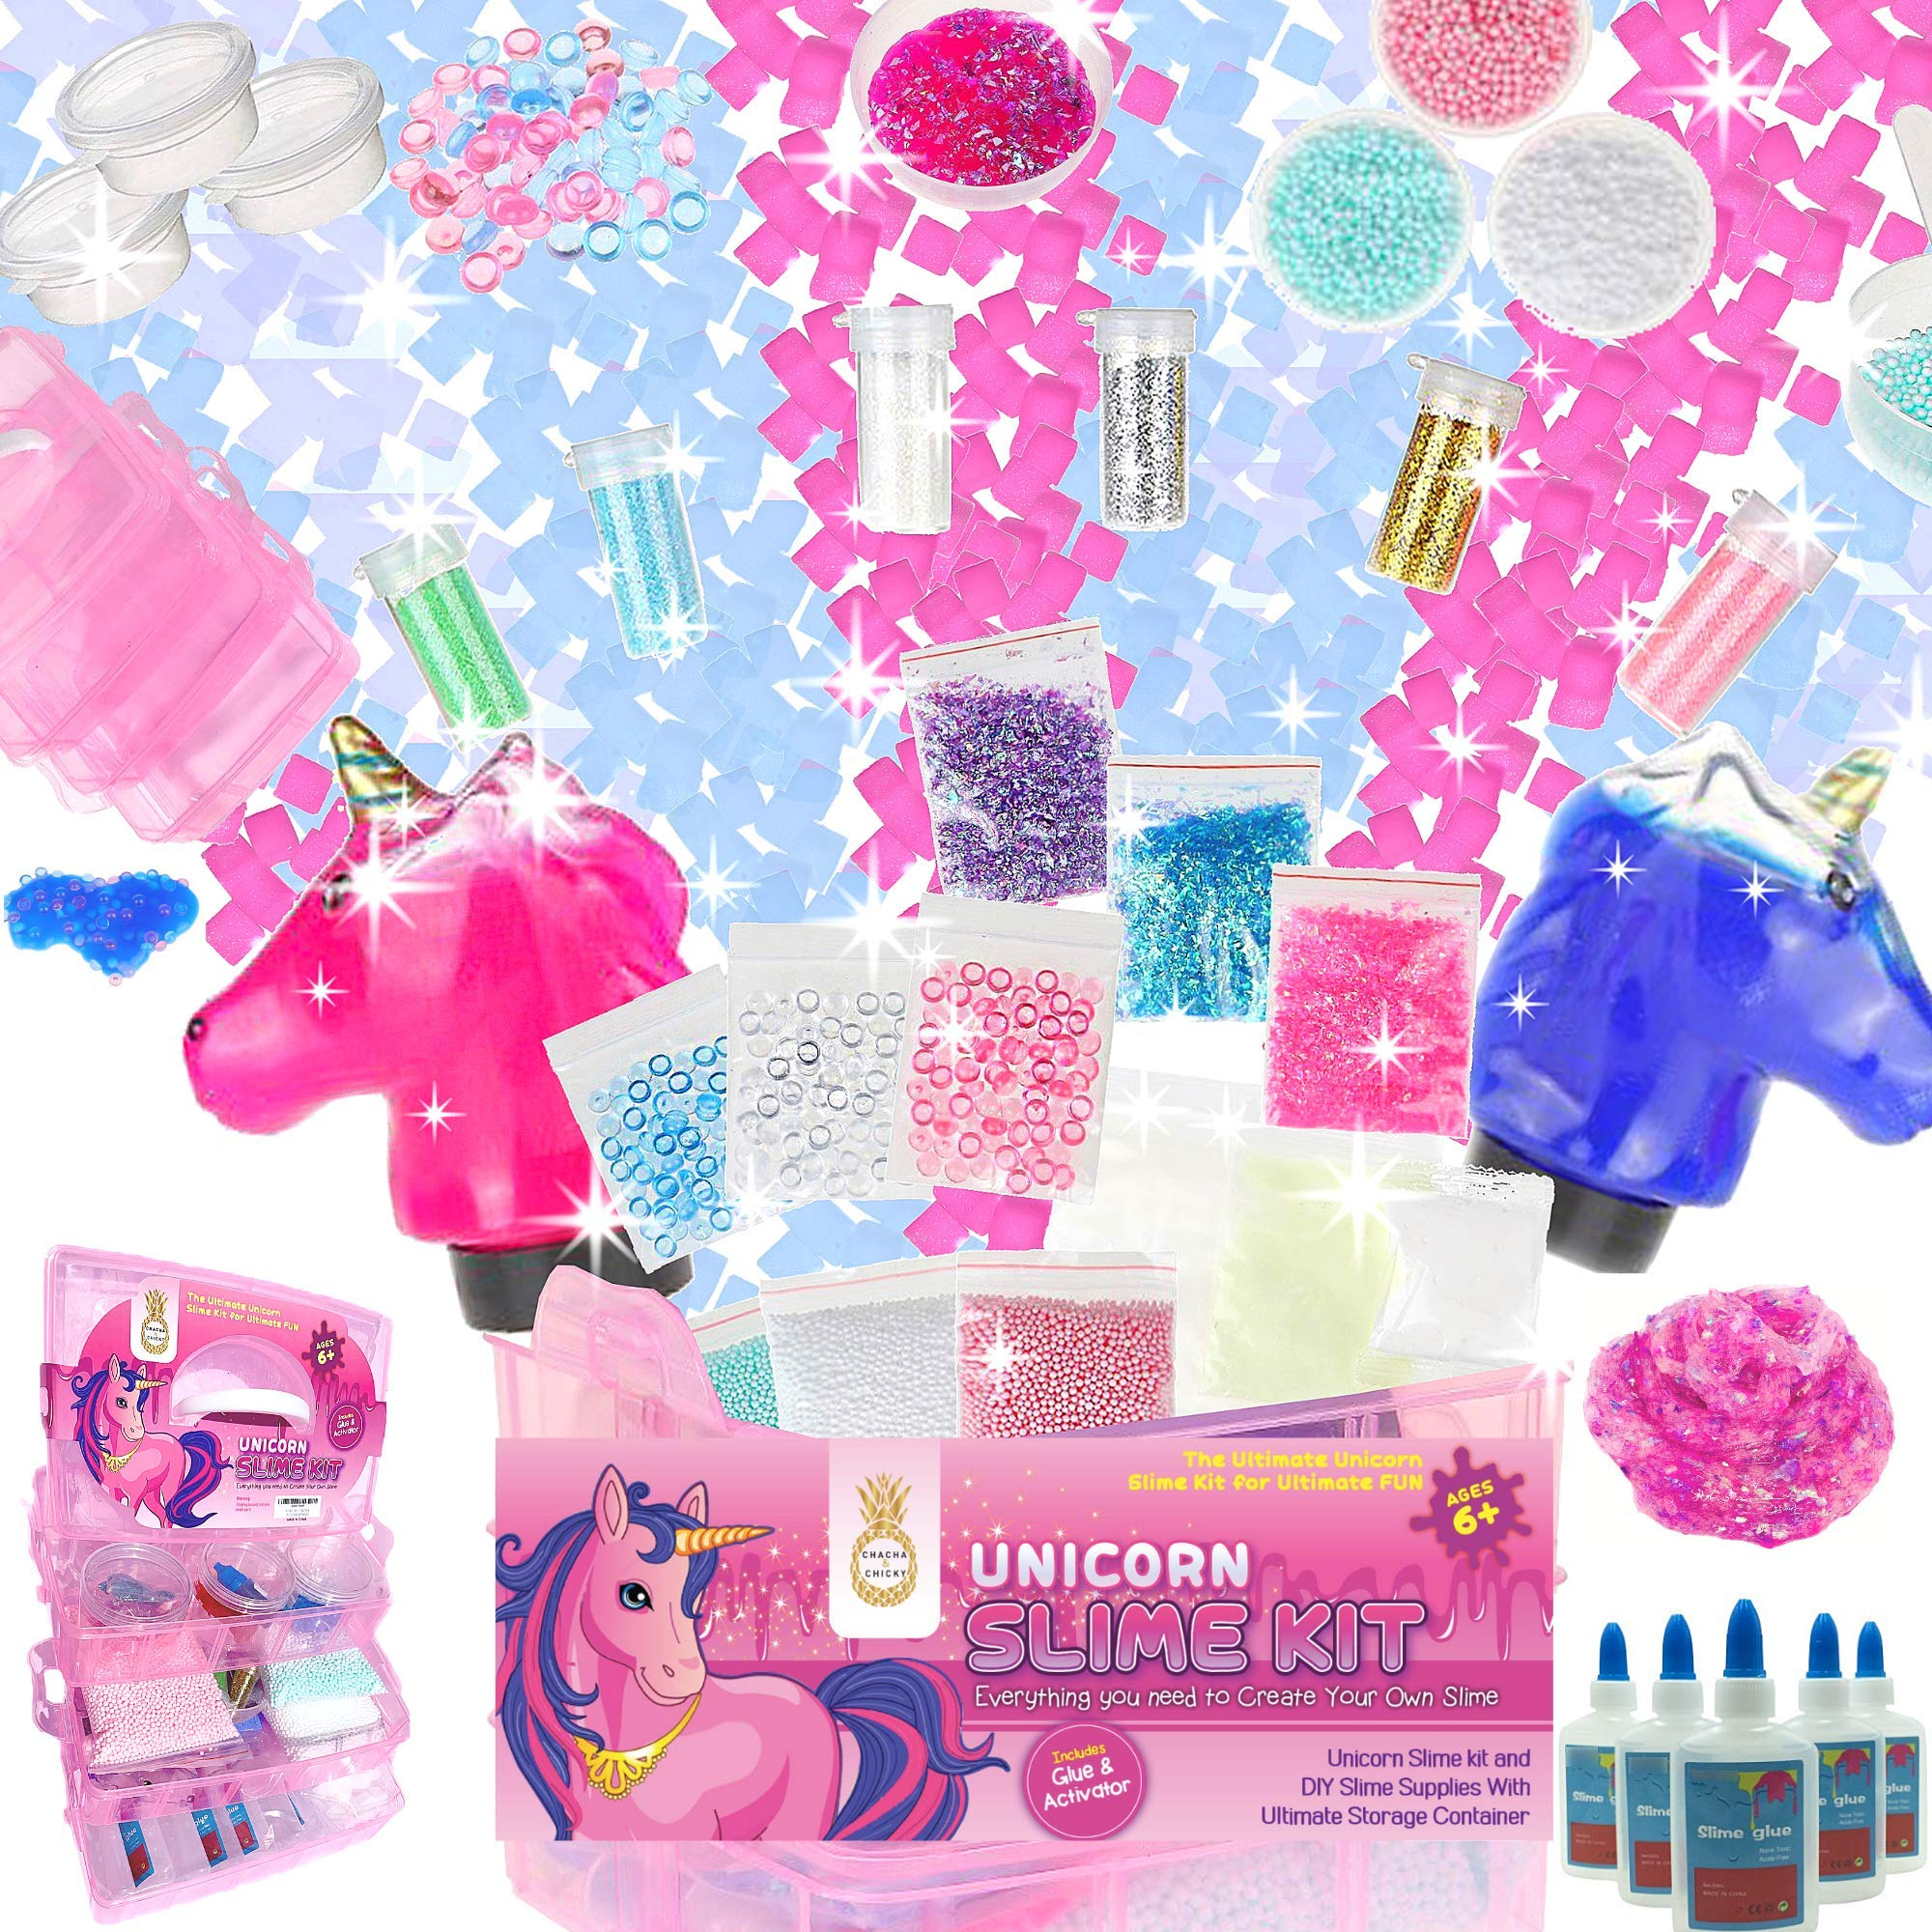 Unicorn Slime Kit for Girls- Slime party Supplies|NOW 50% OFF LIMITED TIME! |HUGE 3-IN-1 NON-TOXIC SET| DIY Slime kit with Jelly Cubes, clear Glue, foam balls, Make unicorn poop, Rainbow Slime